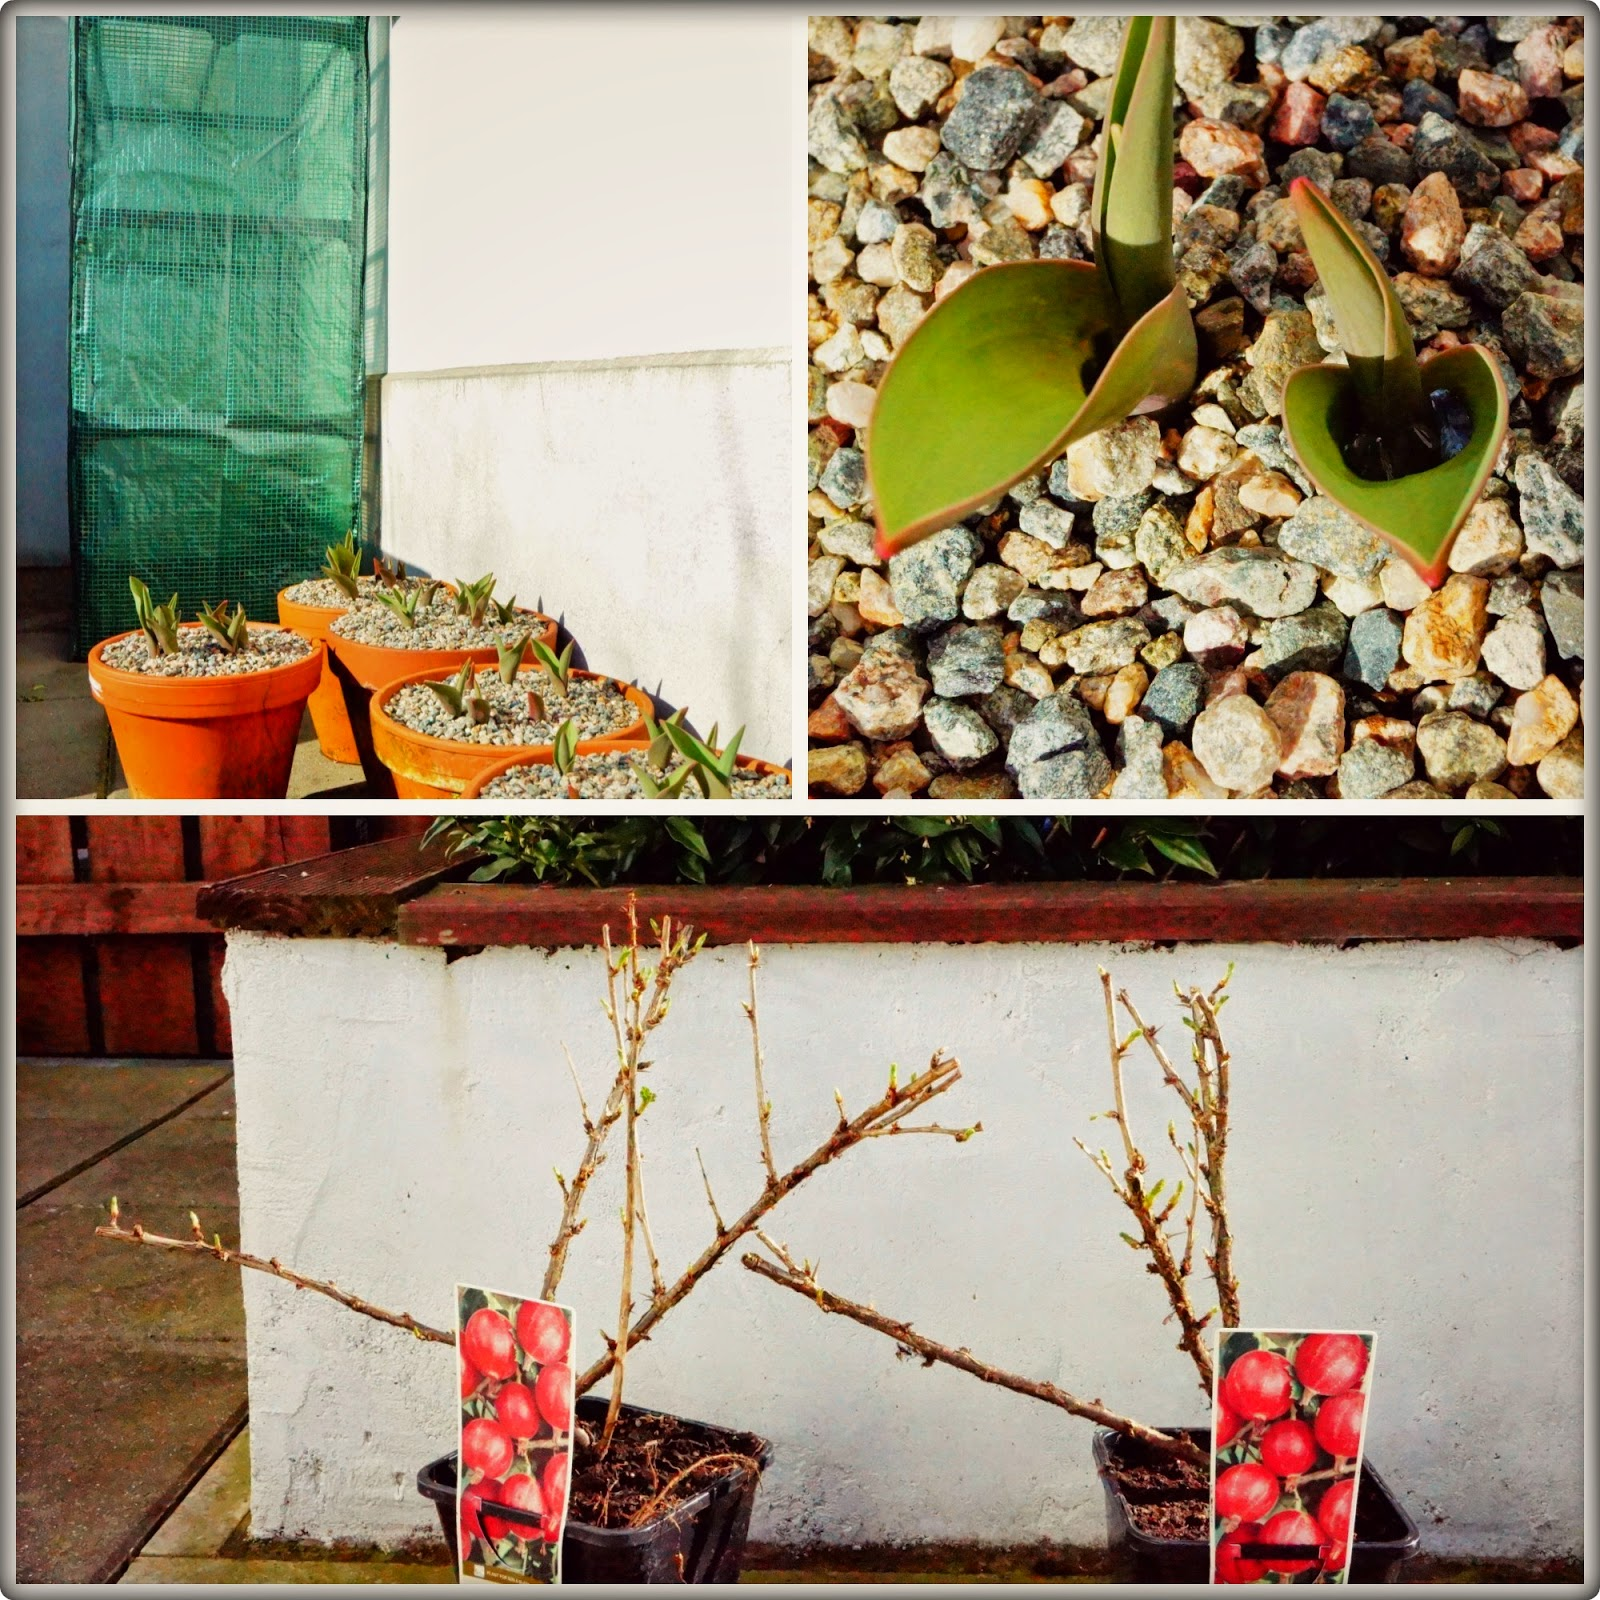 little greenhouse, tulips and red gooseberries - 'growourown.blogspot.com' ~ An allotment blog